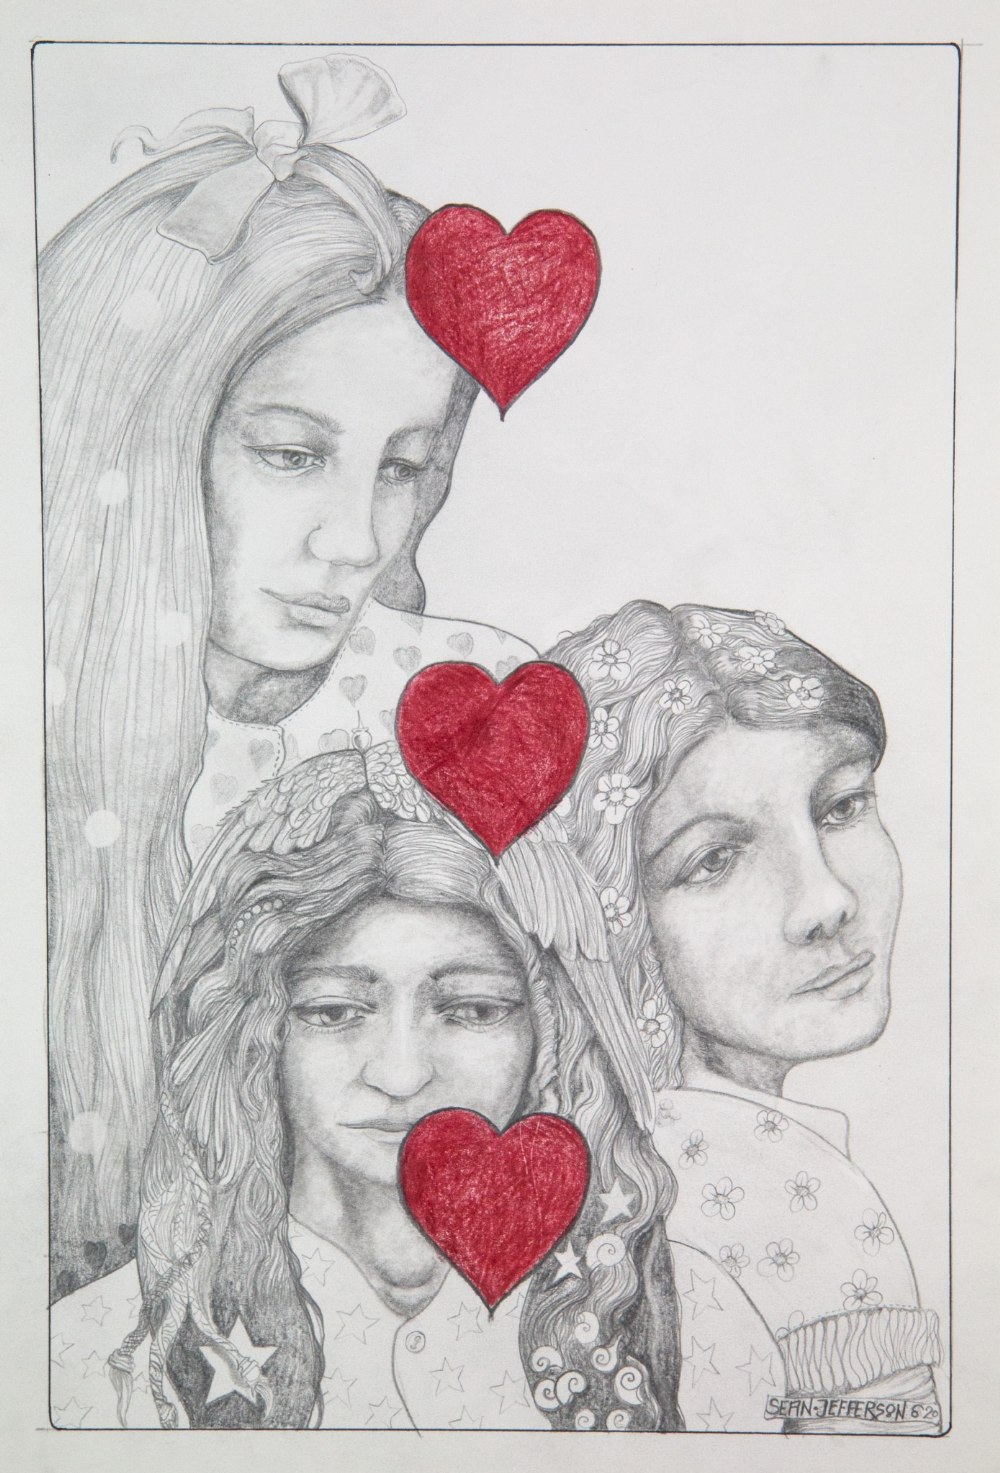 Sean Jefferson (British, b.1957). '3 of Hearts'. Graphite and coloured crayon on paper. Image